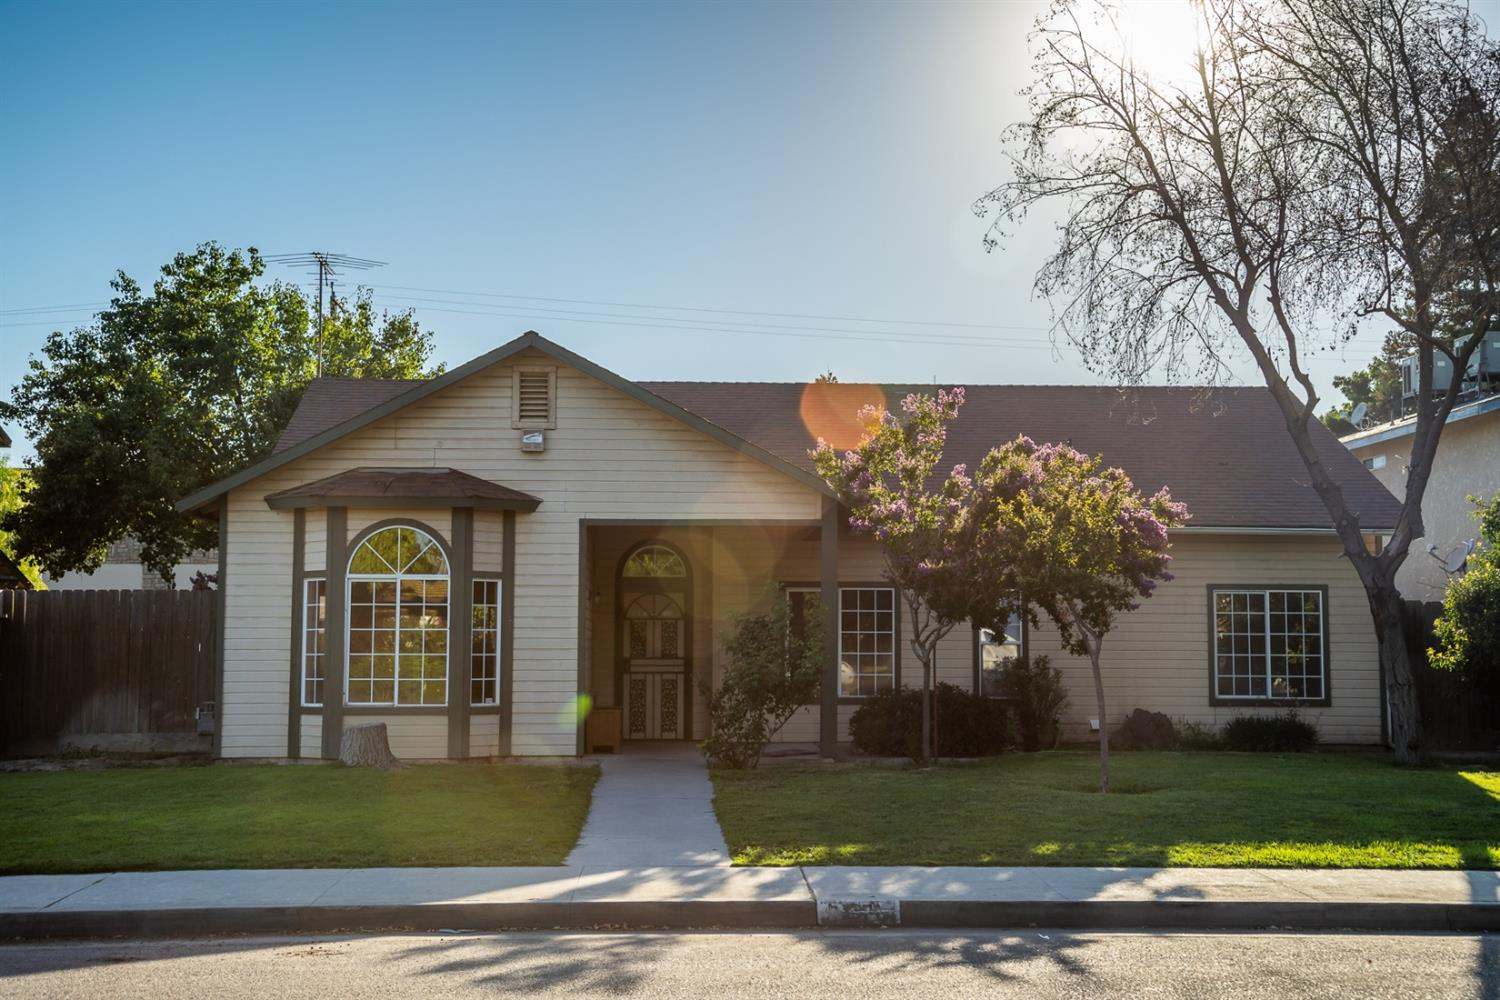 This home has 1800+ sq ft plus a finished garage! That totals around 2400 sq ft! Open kitchen to family room. Living room with formal dining space and fireplace, many built-in cabinets, wet bar, it's a must see! Also extra parking space - room for an RV.  Extra room converted garage (huge! can be used for game room, office or?? Large backyard for entertainment.